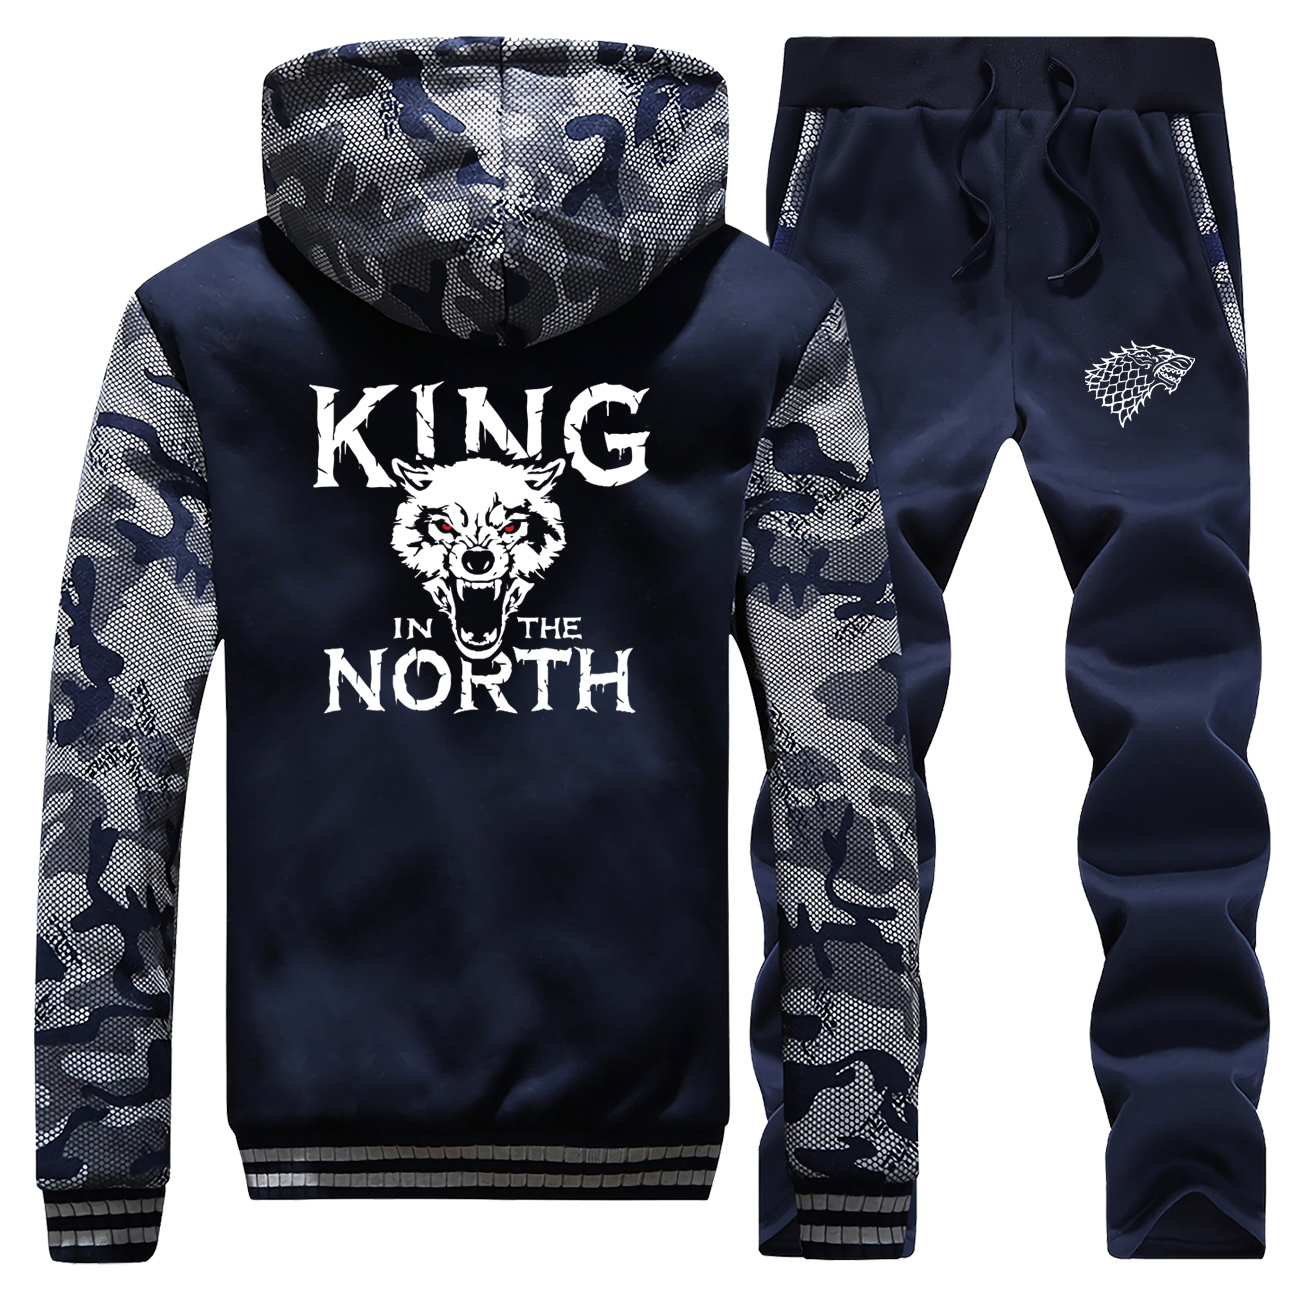 2019 Winter Camo Male Set Men King In The North Thick Jackets Game Of Thrones TV Show Pants Sweatshirts Warm Fleece Men's Sets